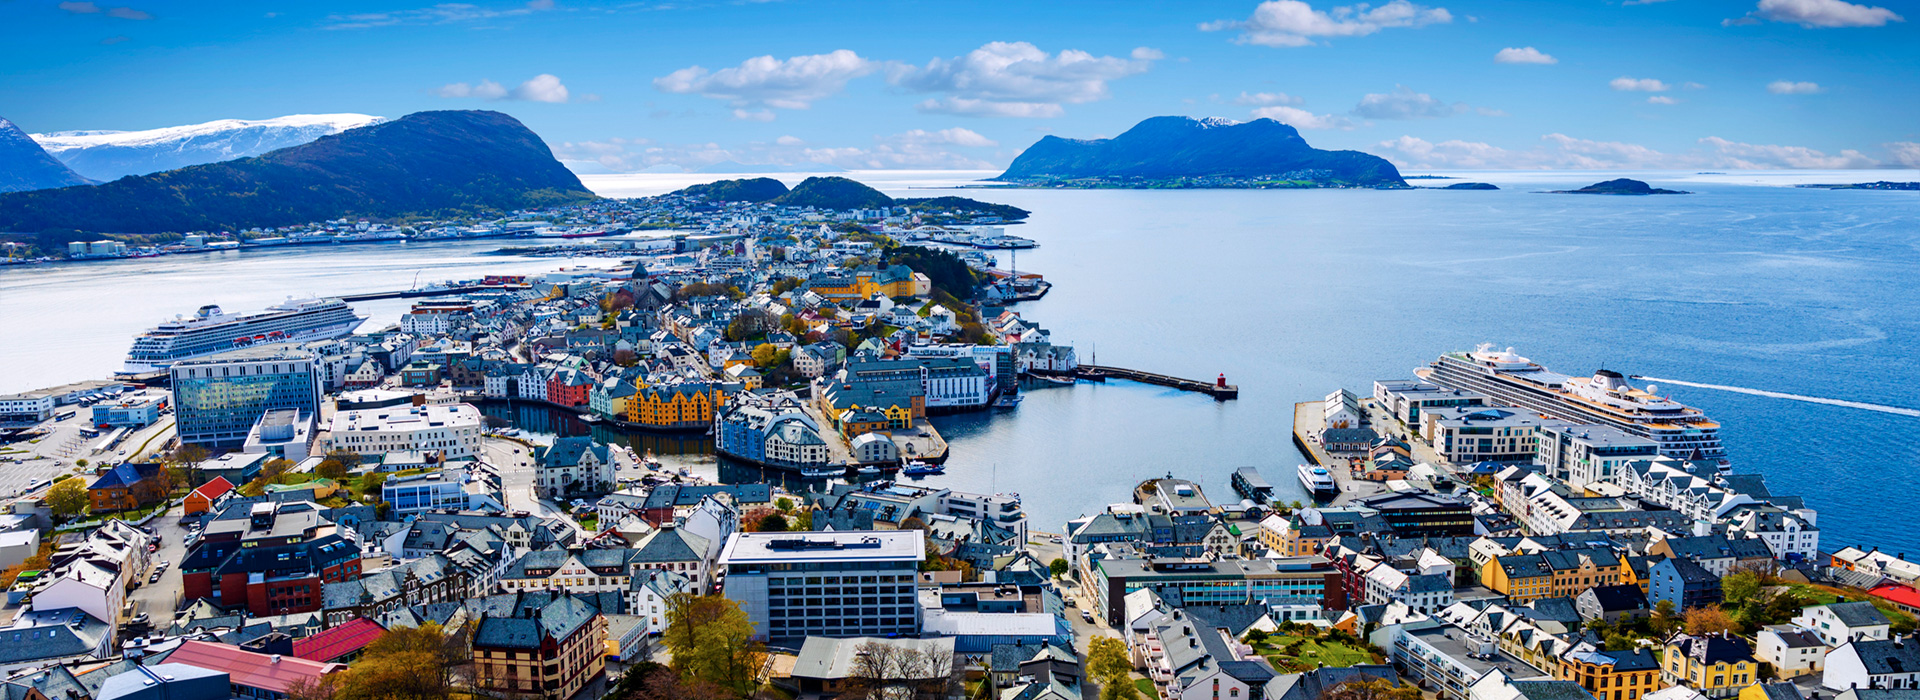 Aalesund seen from Fjellstua